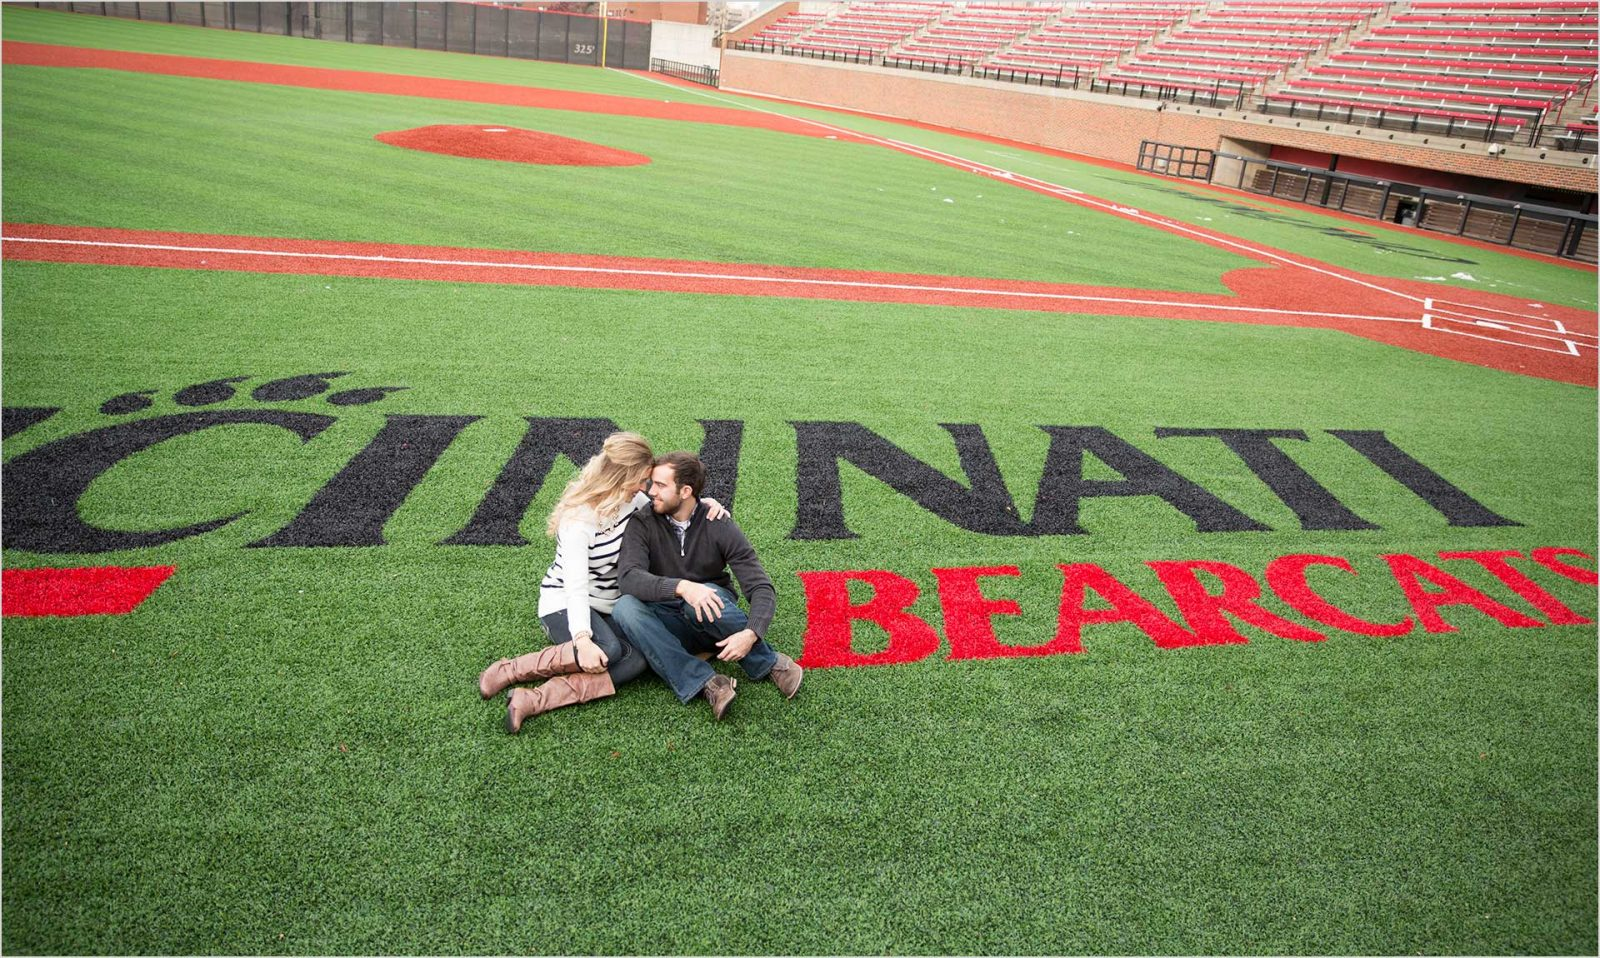 University of Cincinnati Baseball wedding engagement